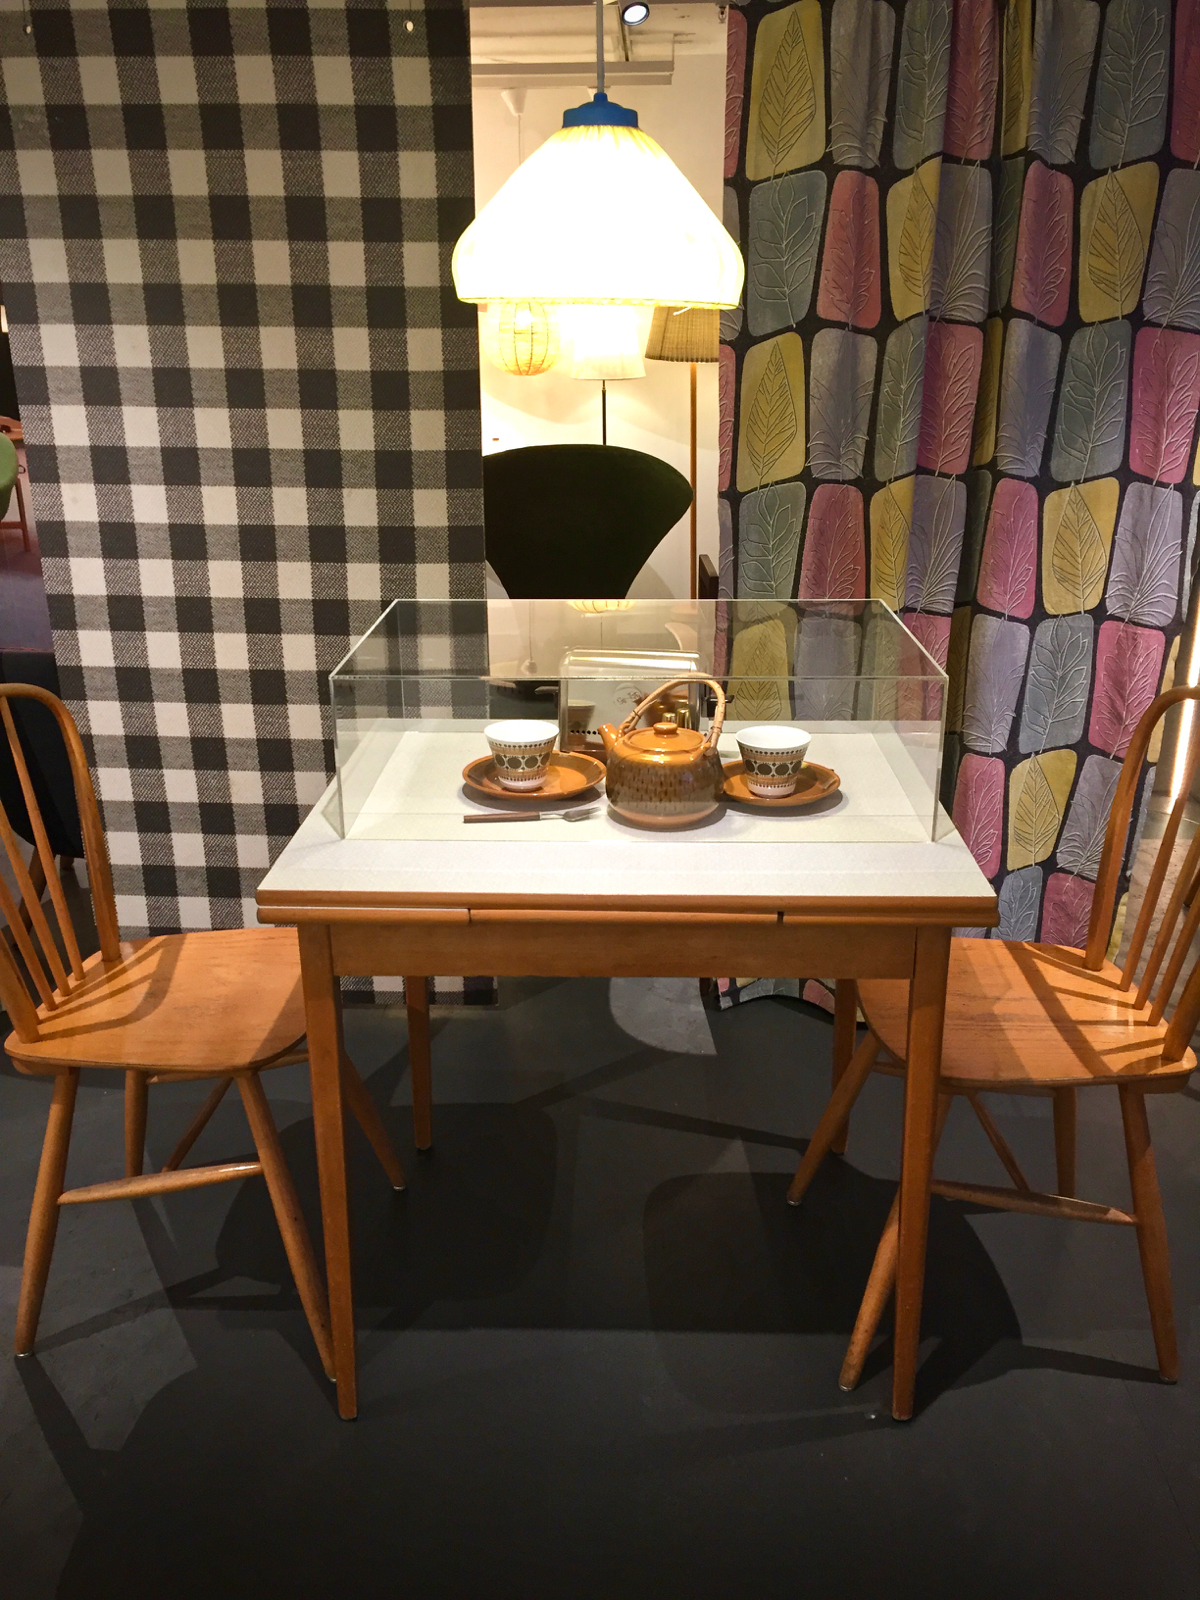 Swell Ikea Museum Almhult Sweden Wonderful Everyday Gastrogays Andrewgaddart Wooden Chair Designs For Living Room Andrewgaddartcom